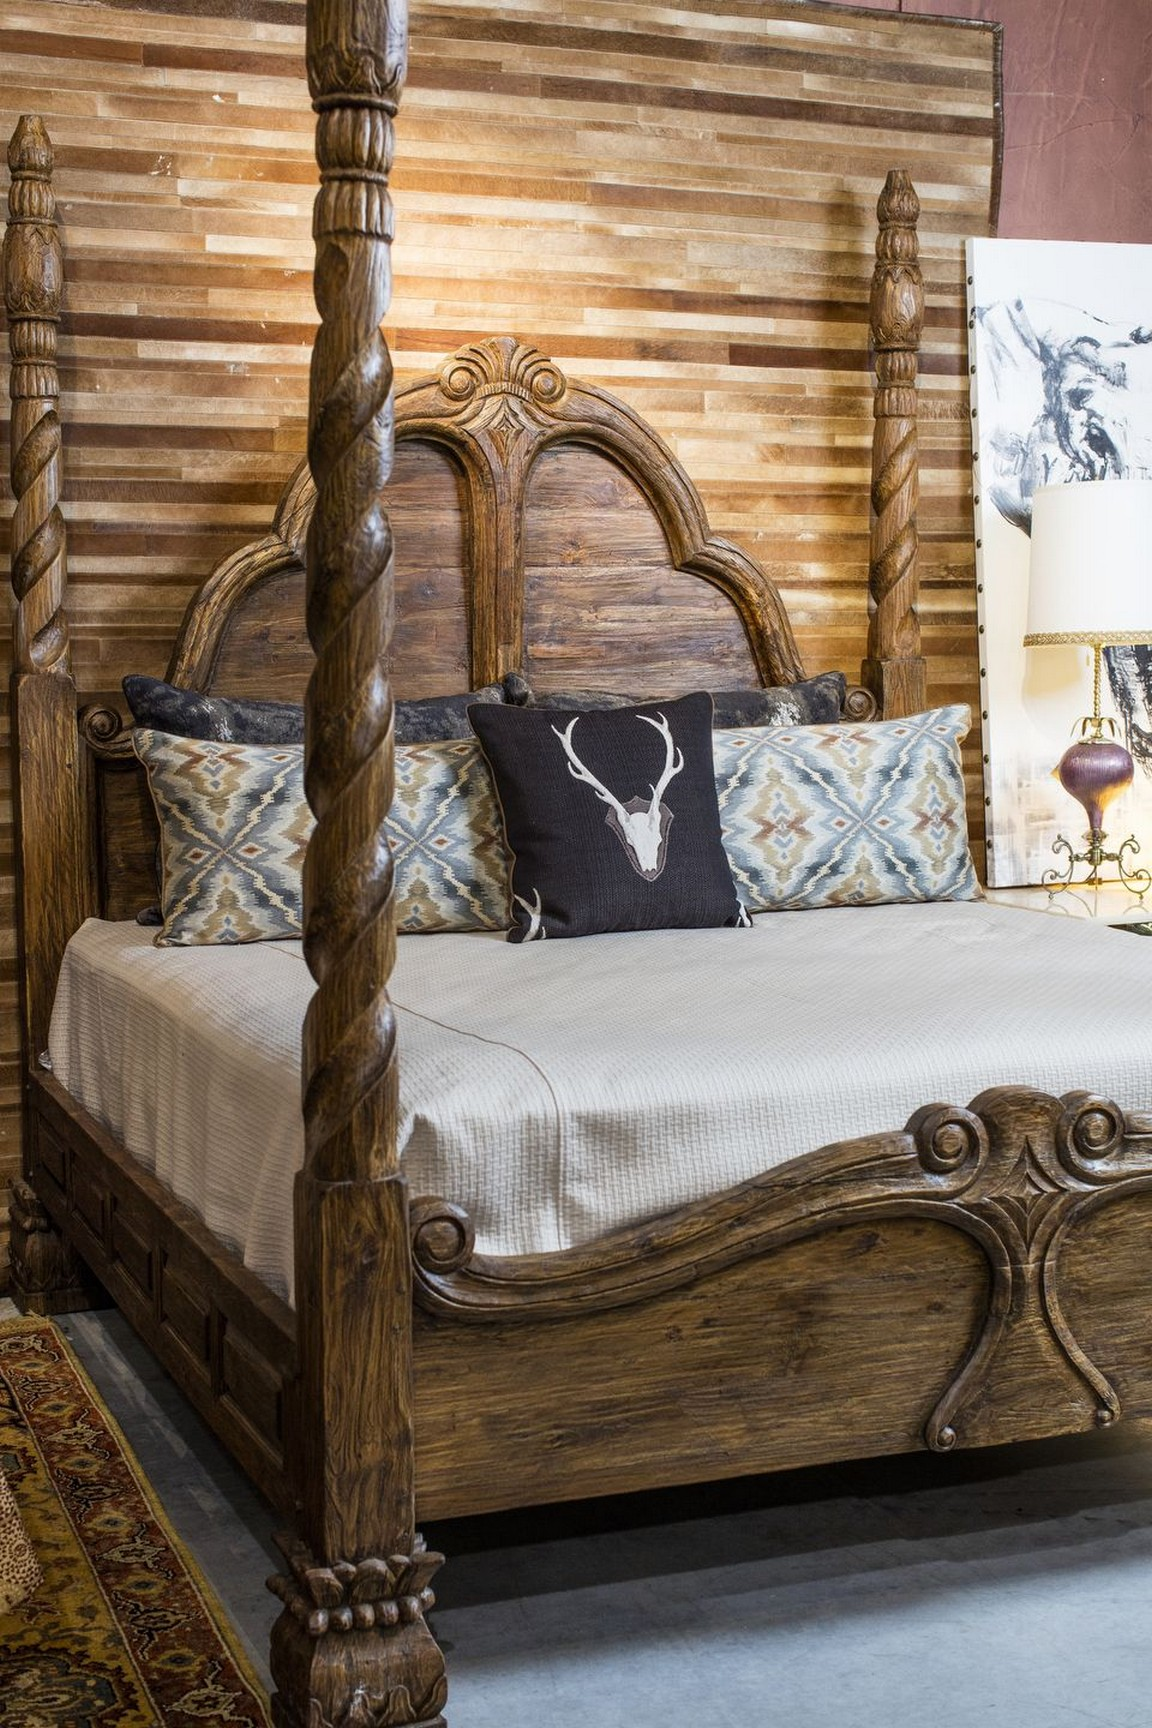 64 Rustic Bedroom Furniture How to Look Elegance Home Decor 35